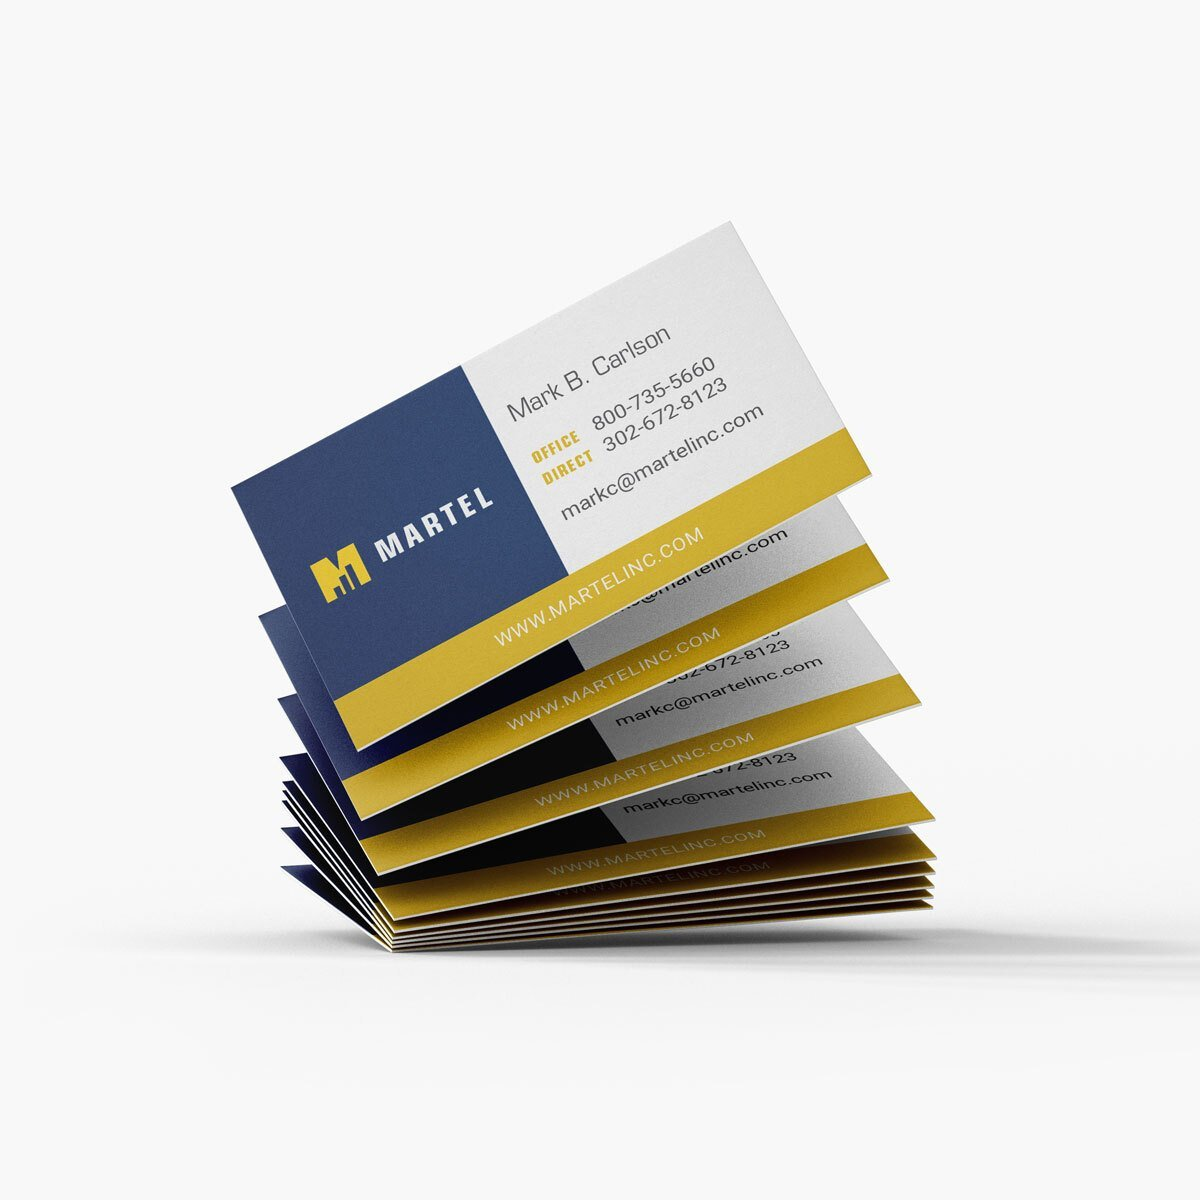 Martel Business Cards Design by BrandSwan, a graphic design company